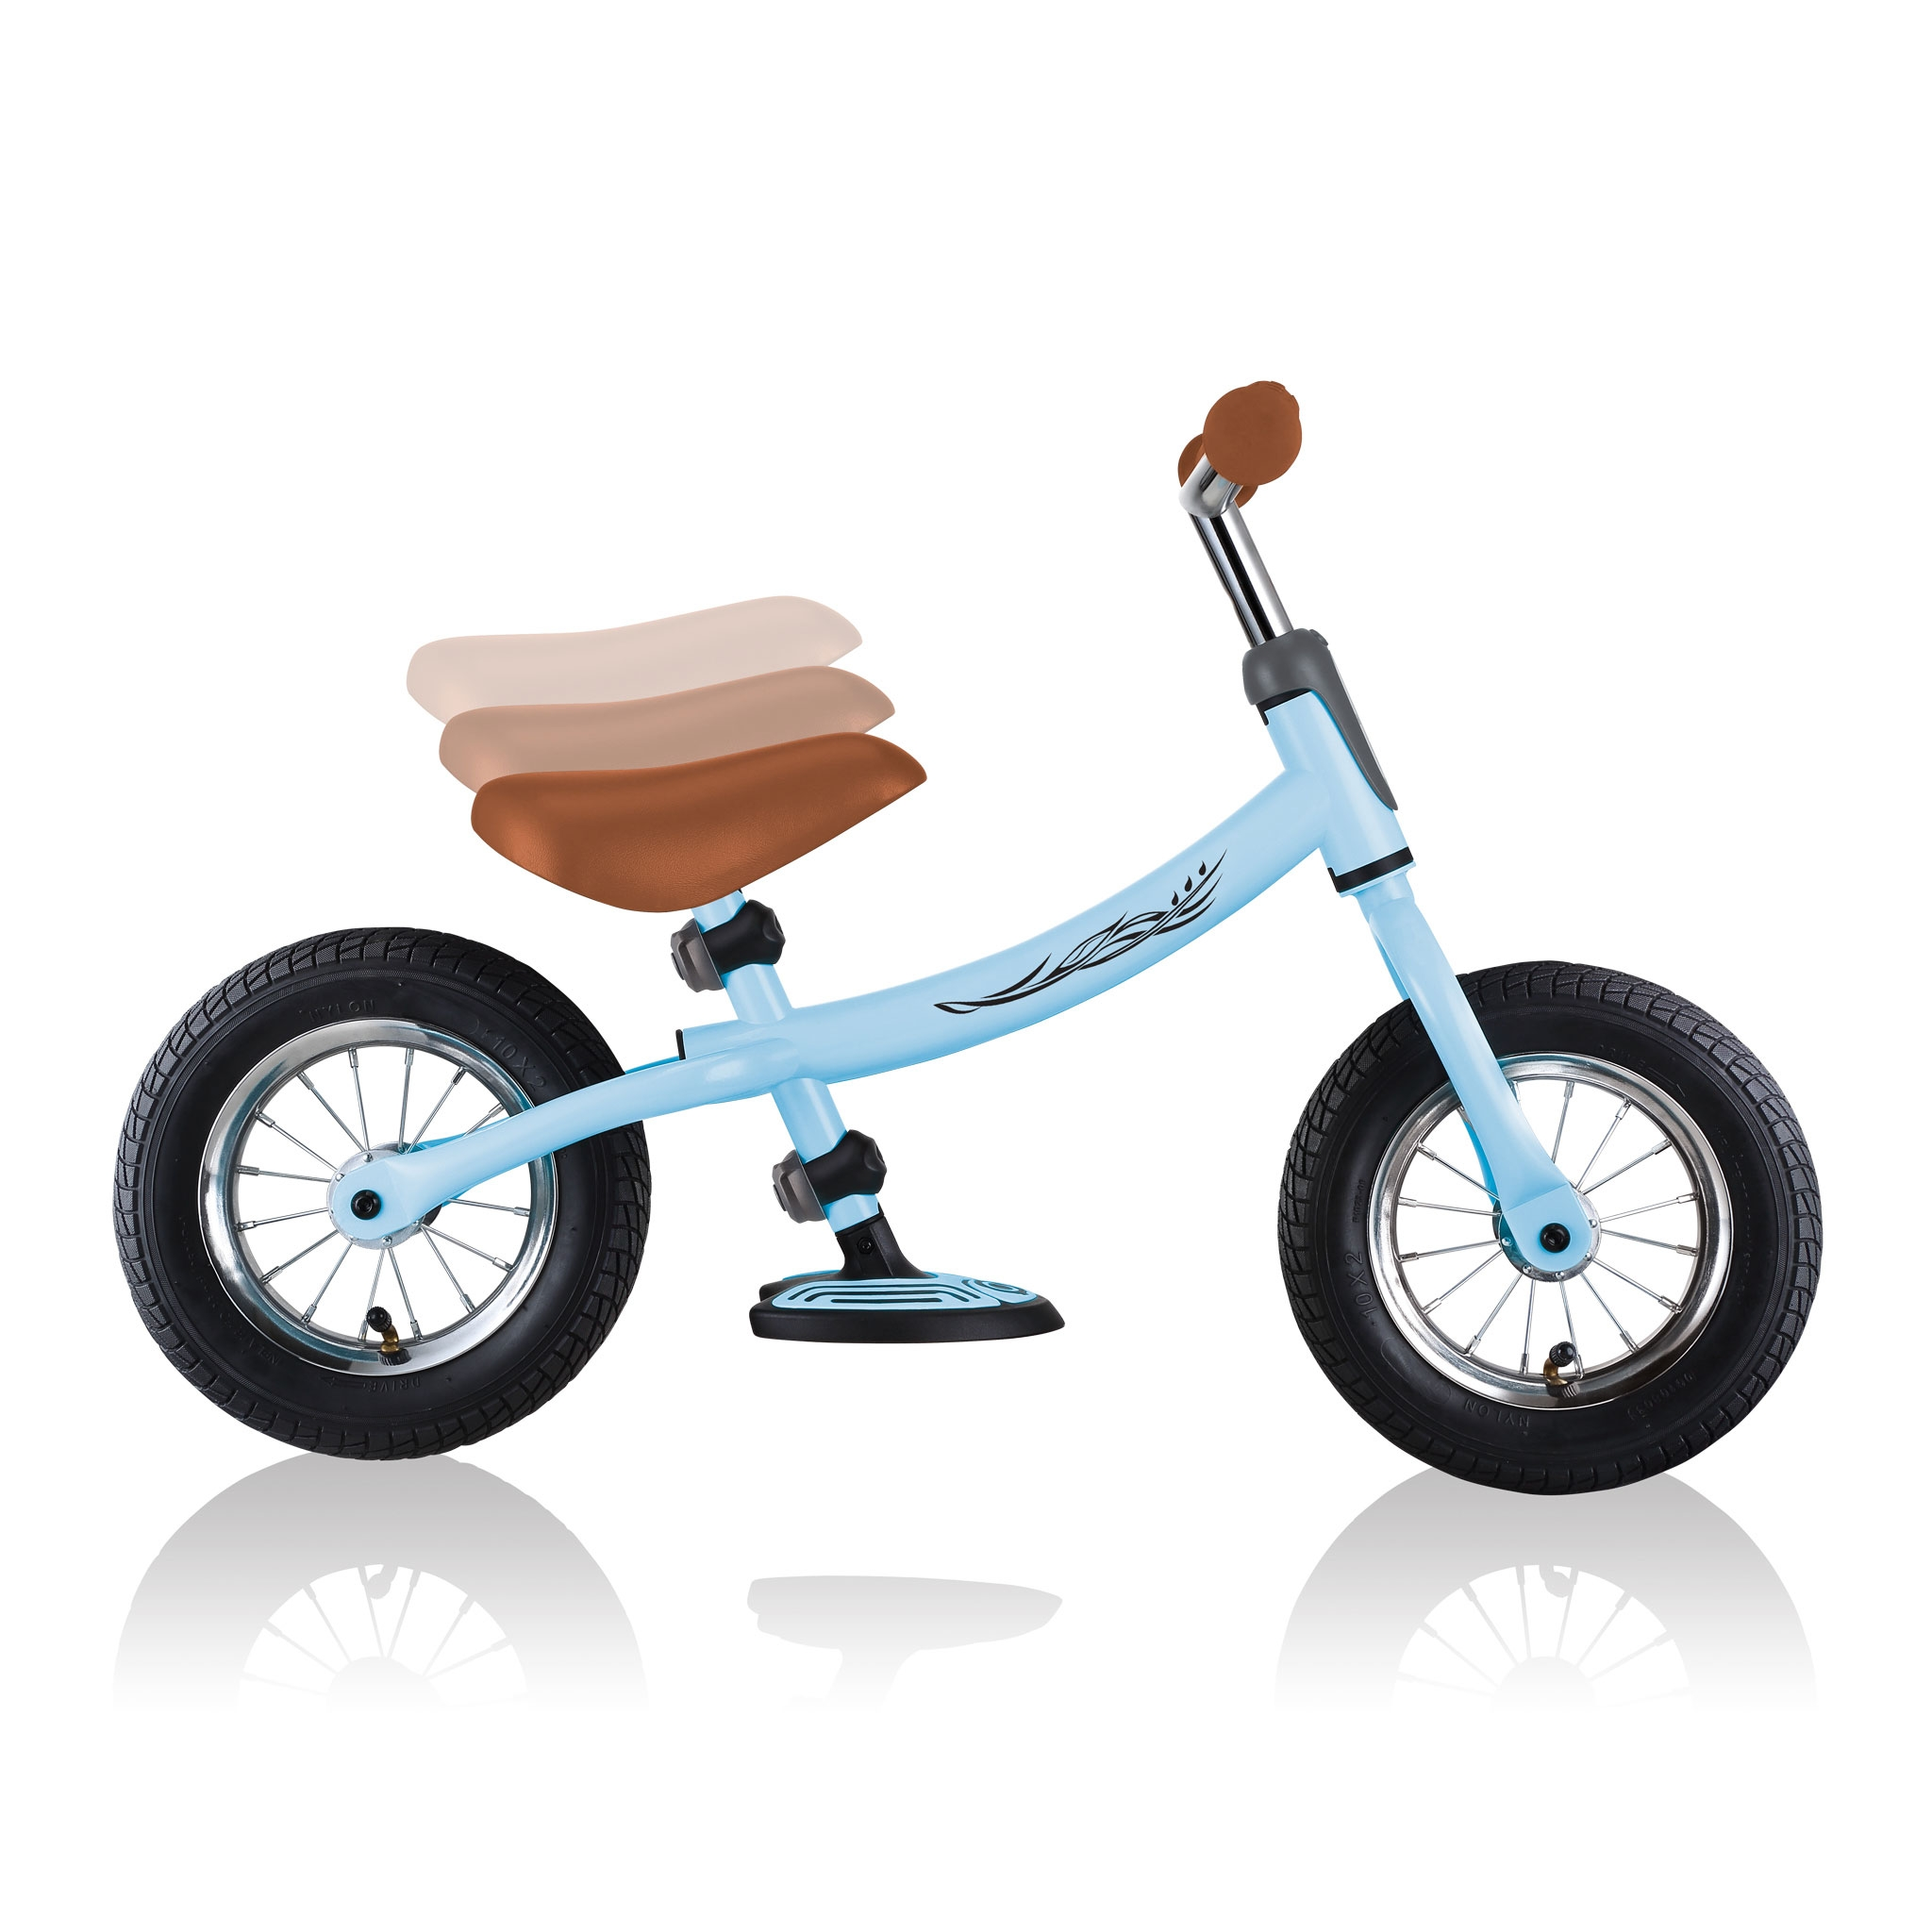 GO-BIKE-AIR-adjustable-toddler-balance-bike-with-6-height-adjustable-saddle-and2-height-adjustable-handlebar_pastel-blue 2